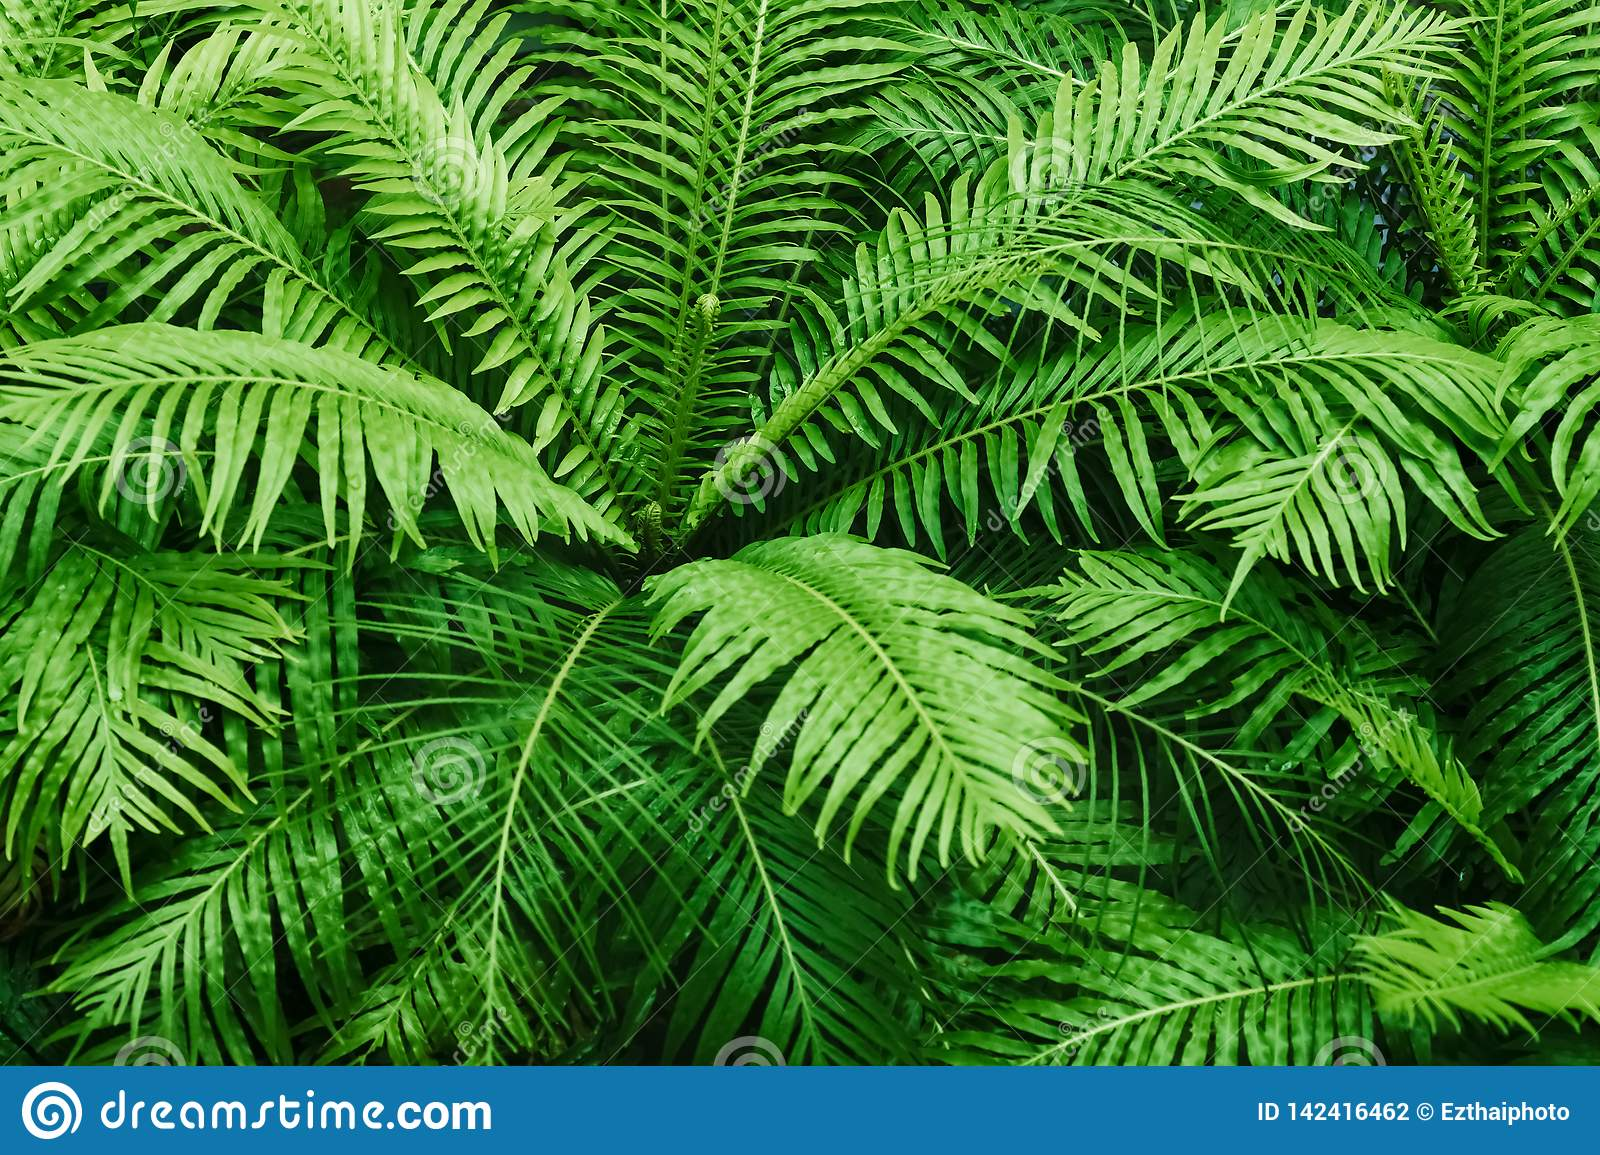 Natural fern textured pattern. Beautiful green fern leaves background. Ornamental green plant tropical rainforest background